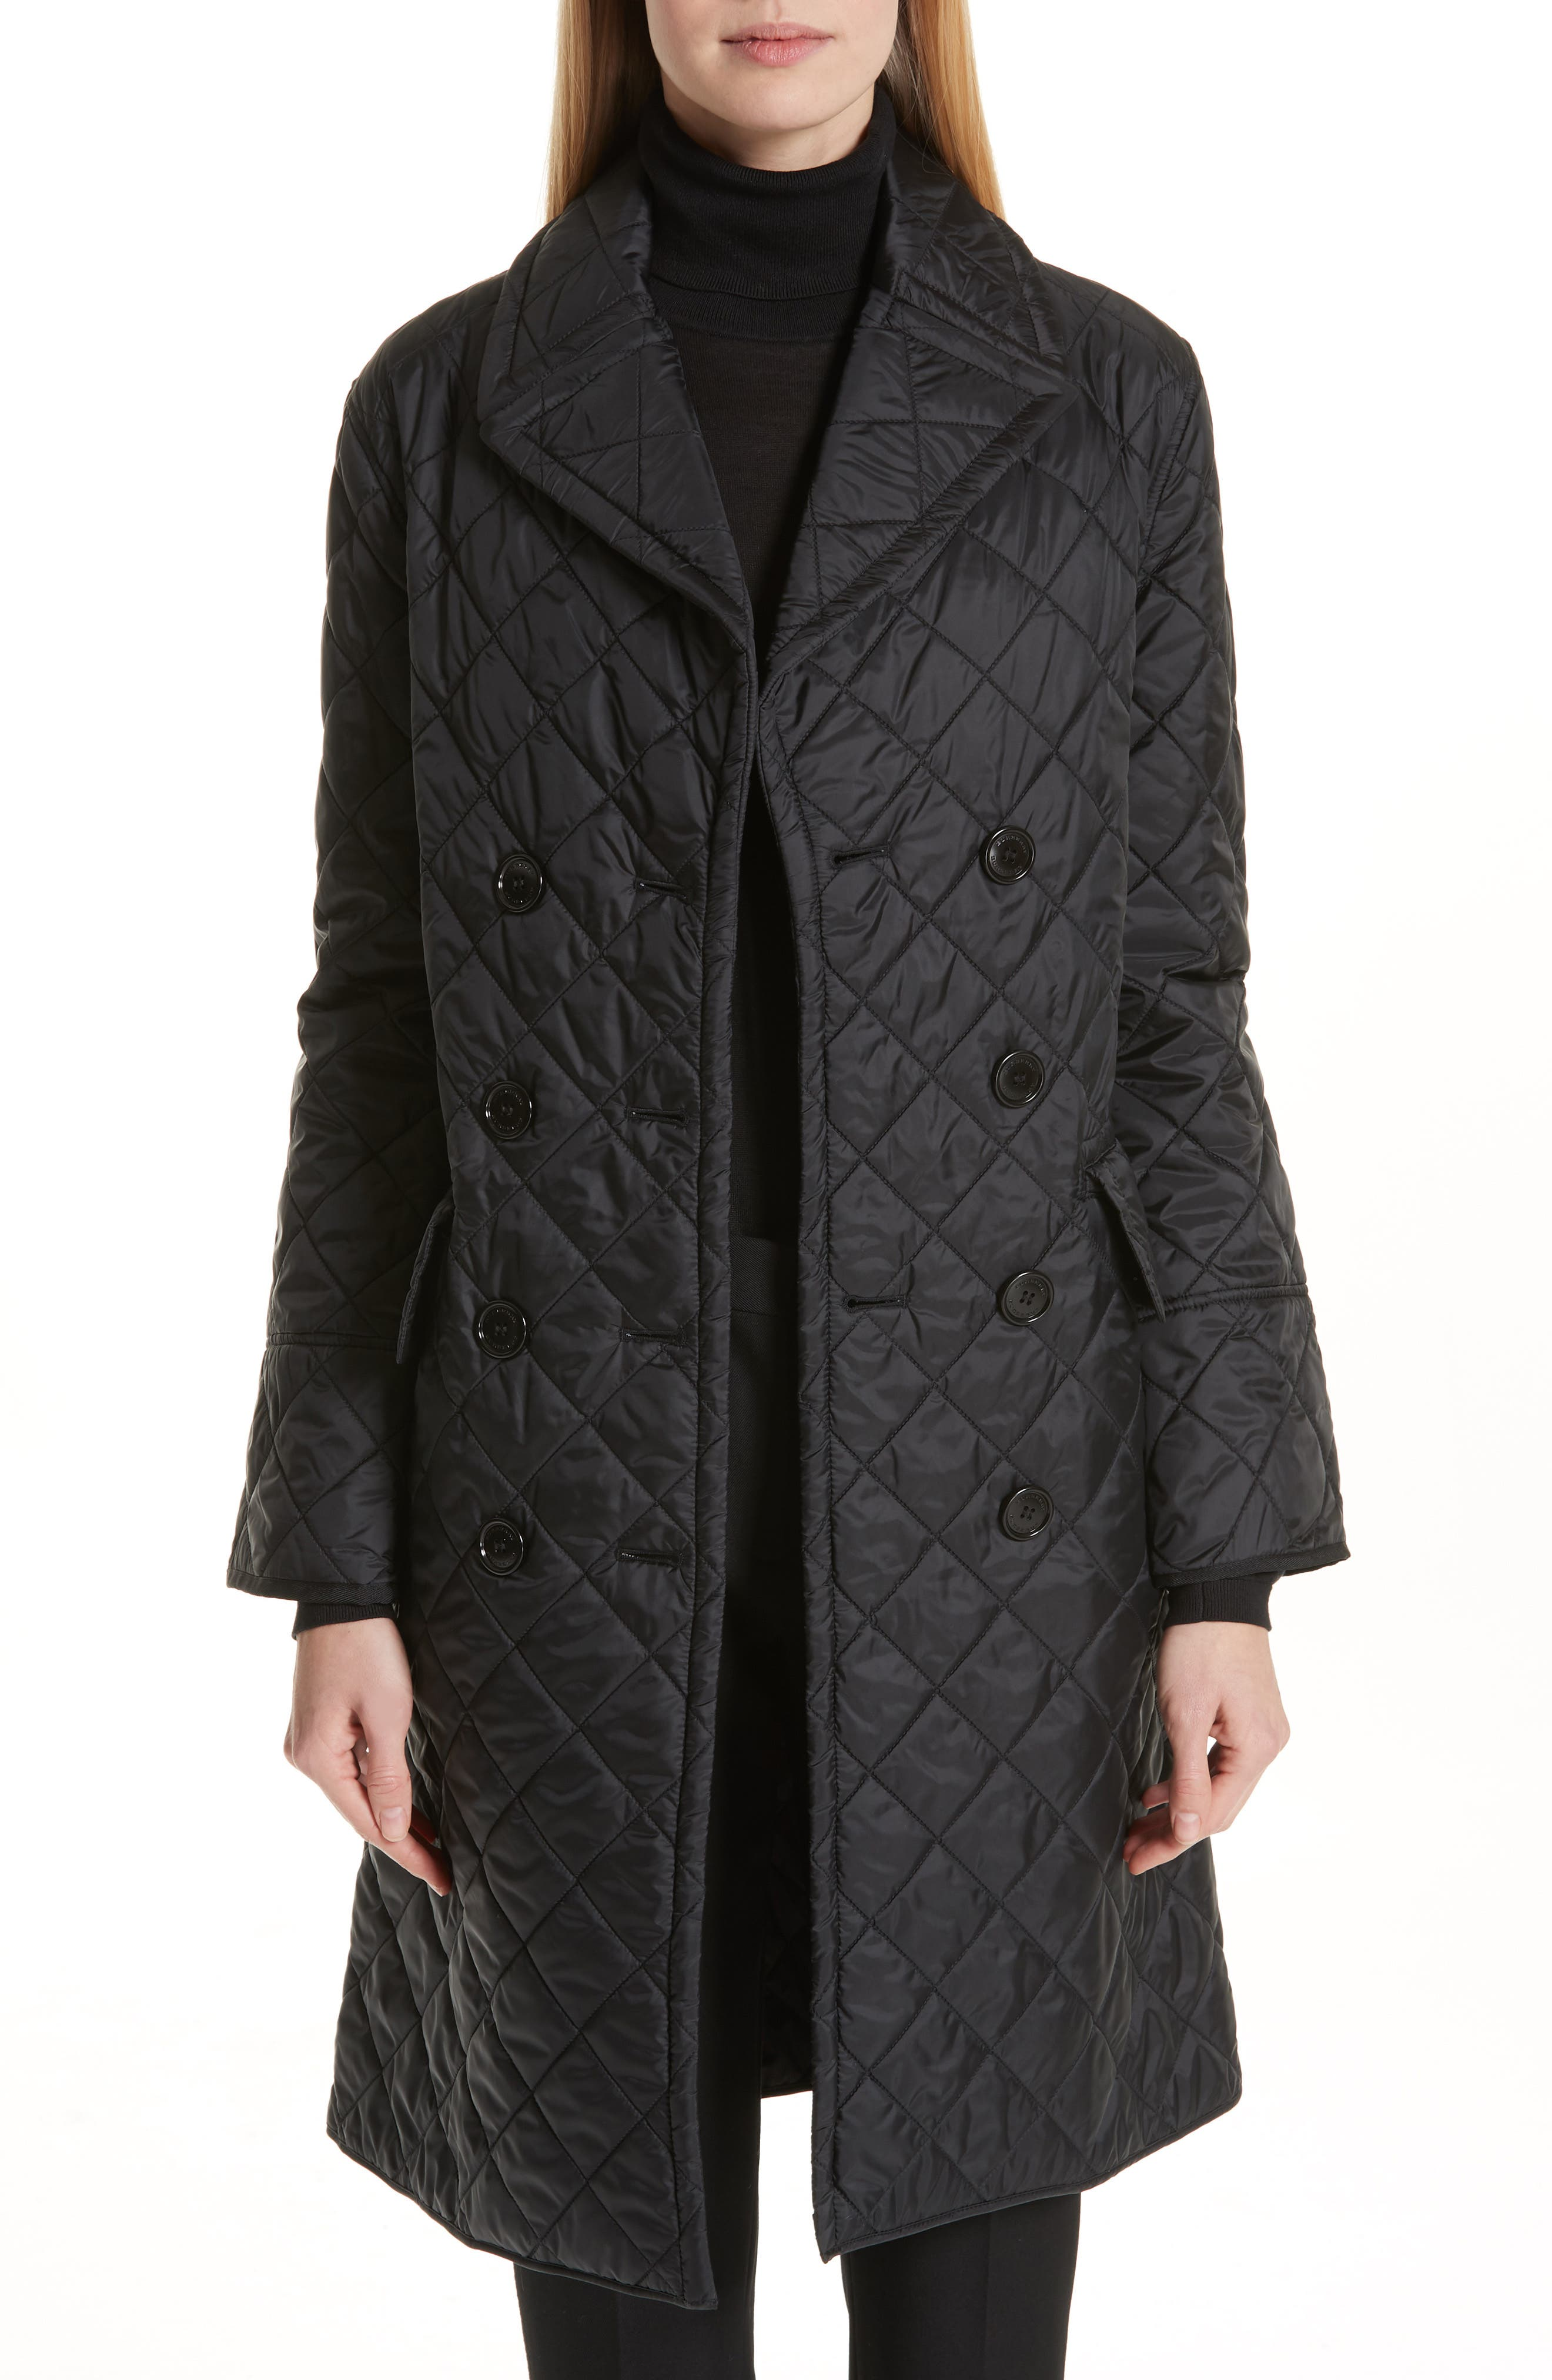 BURBERRY, Horberie Quilted Trench Coat, Main thumbnail 1, color, BLACK